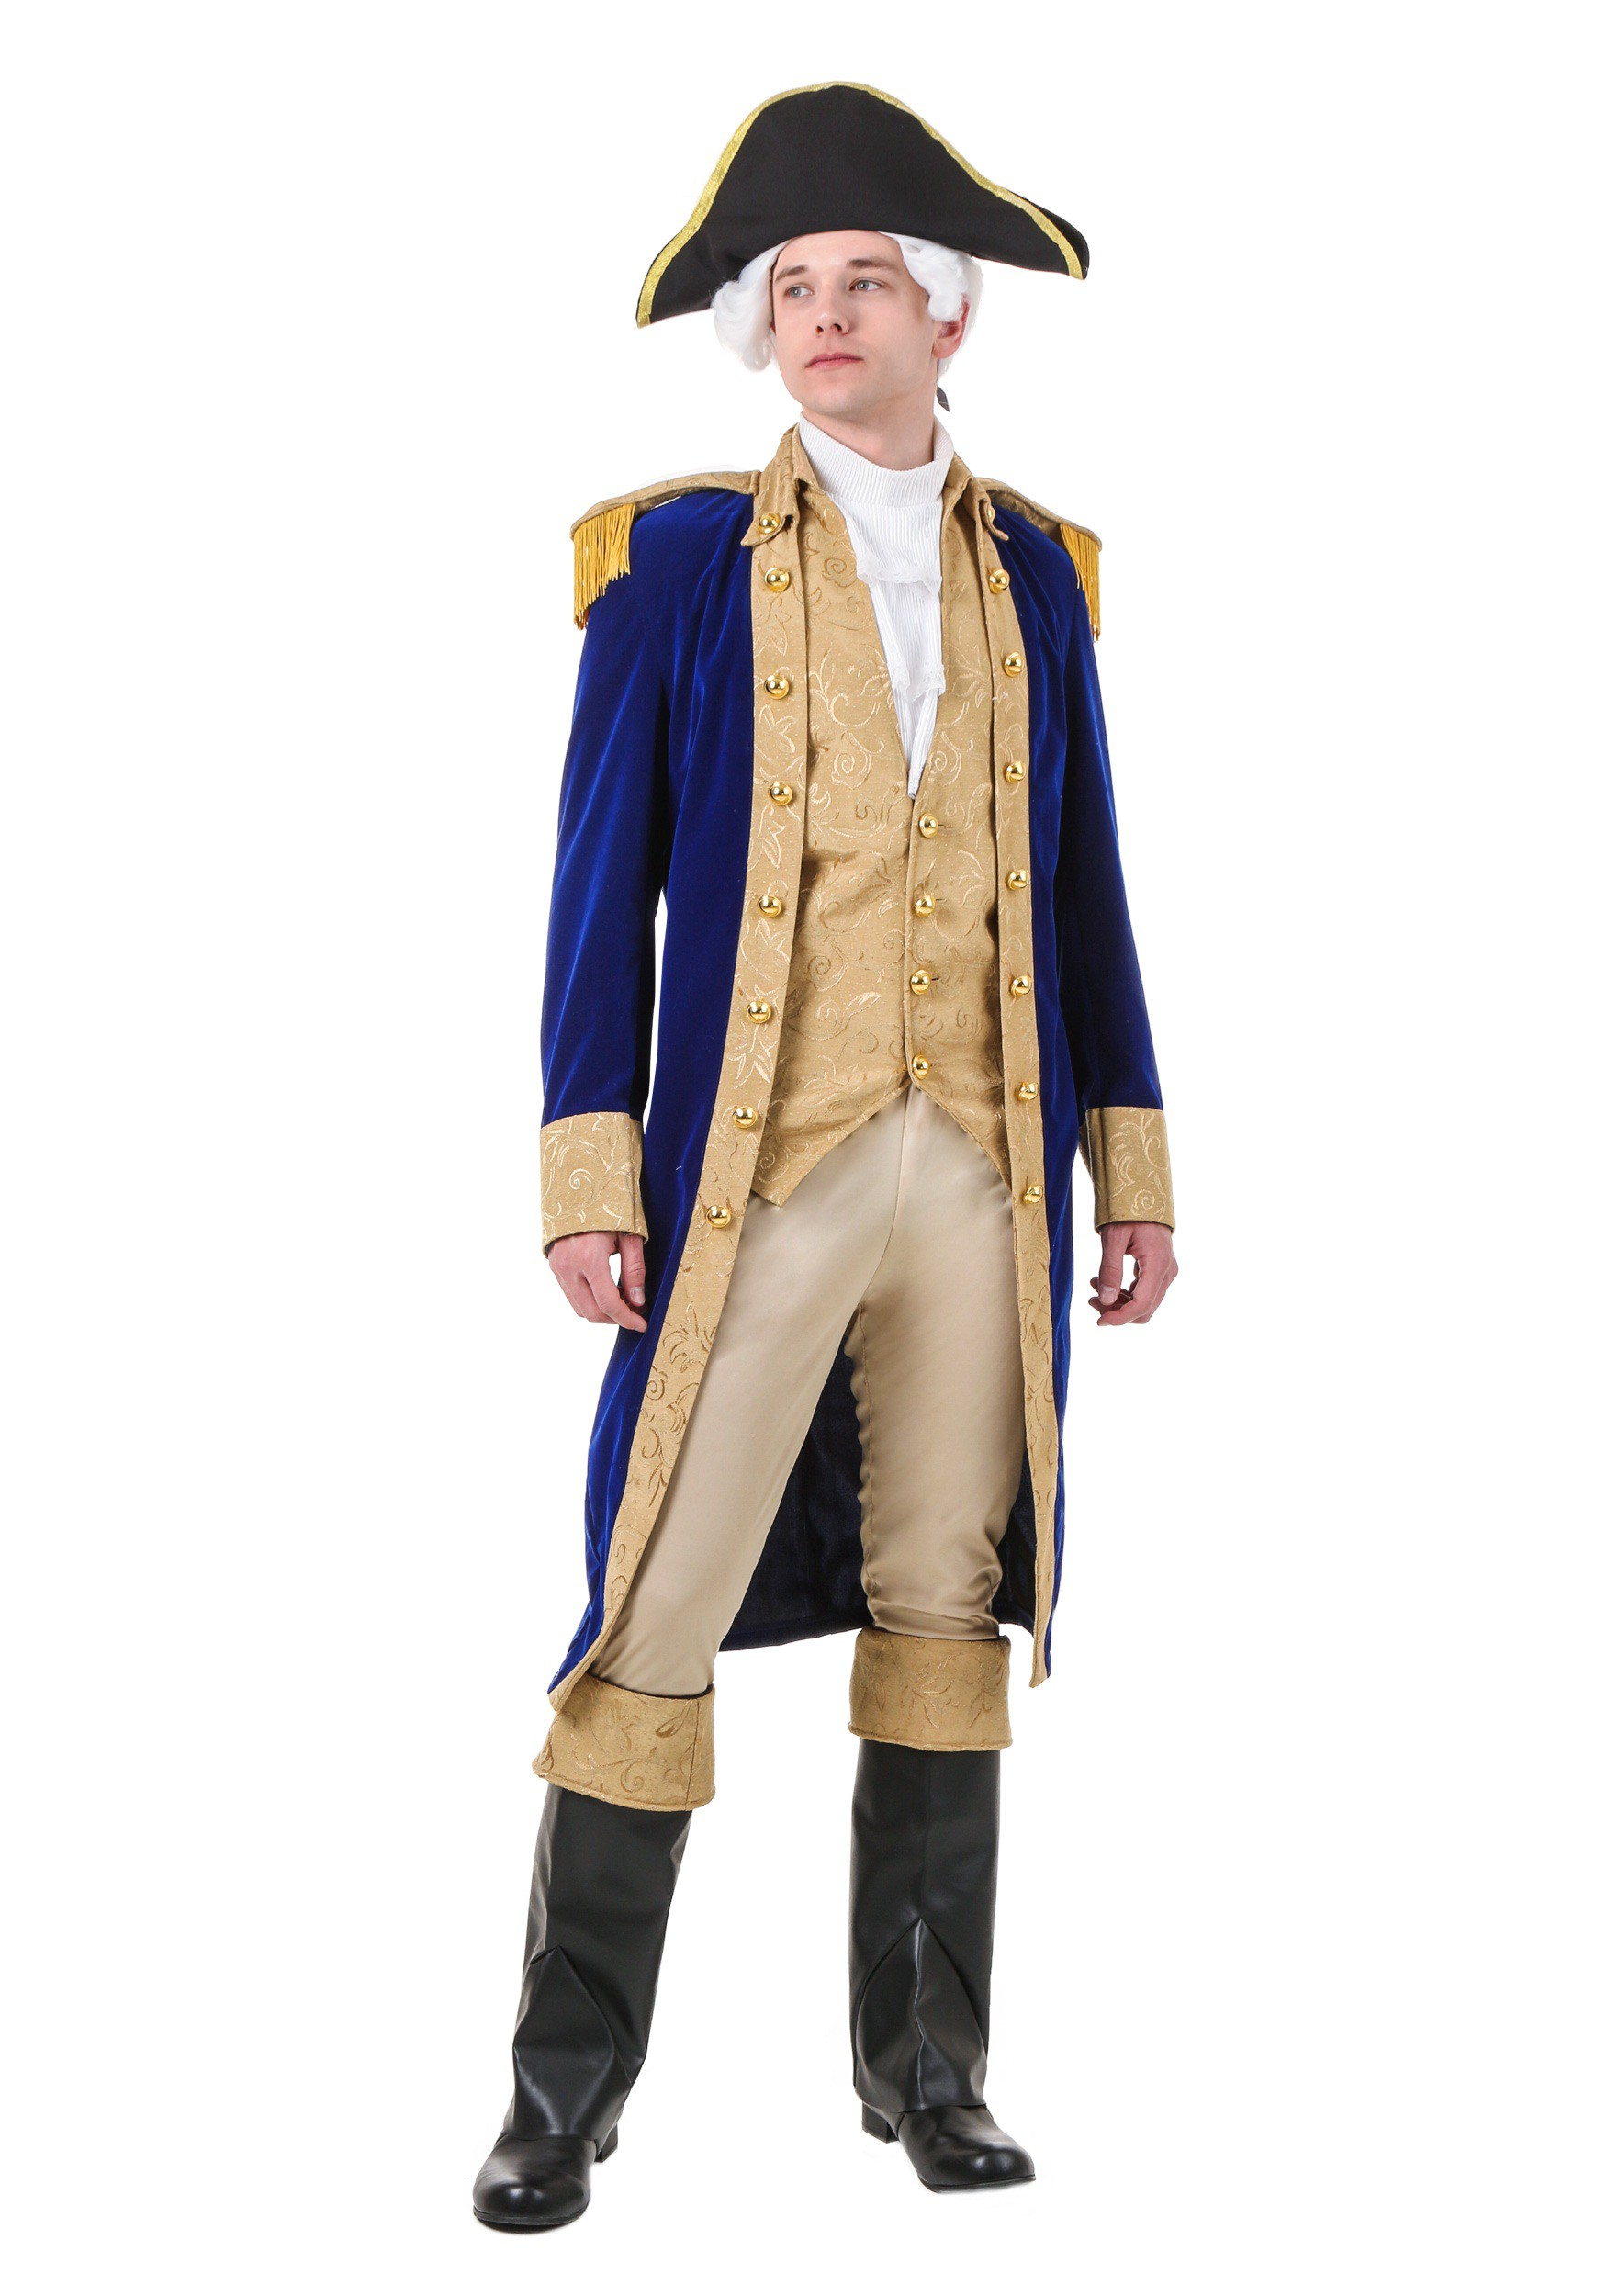 George Washington Costume for Adults | Historical Costume